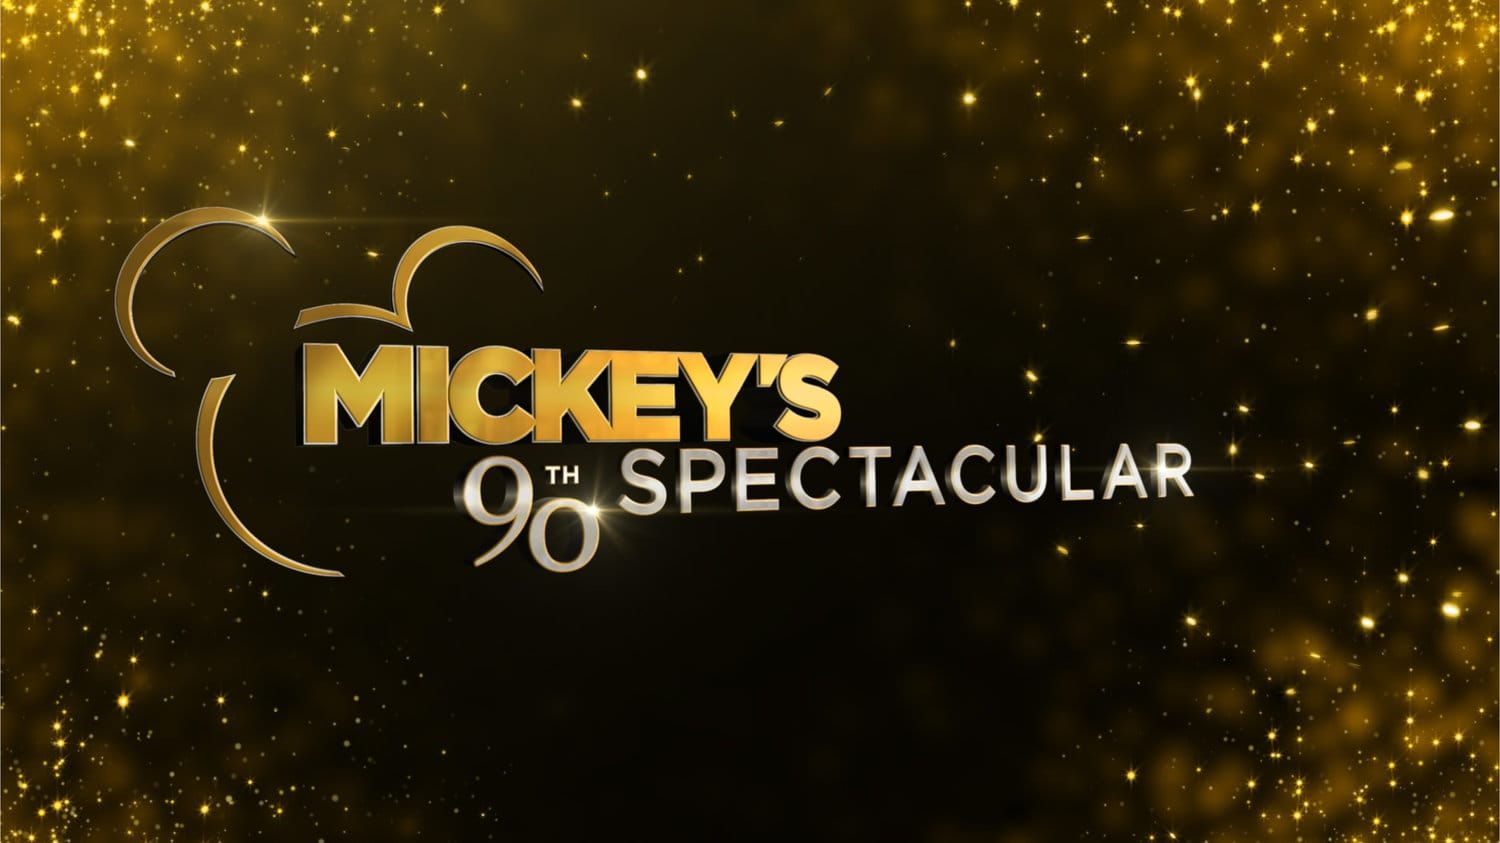 Mickey Mouse 90th Spectacular